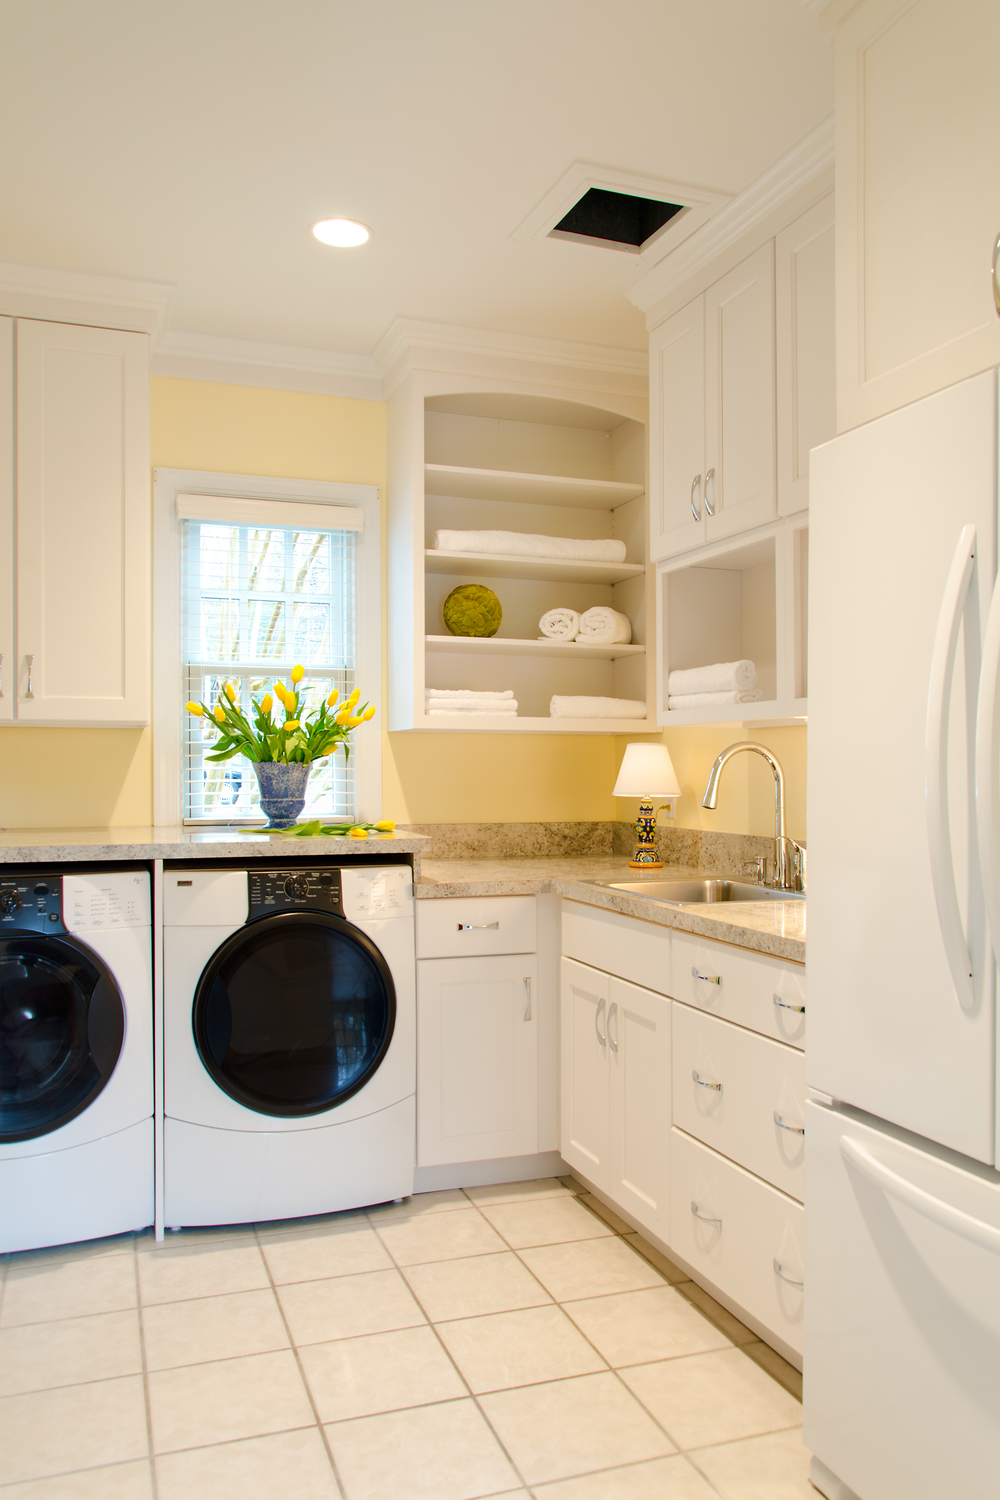 Custom-Kitchens-McGroarty-Laundry-Room-1-31814.jpg